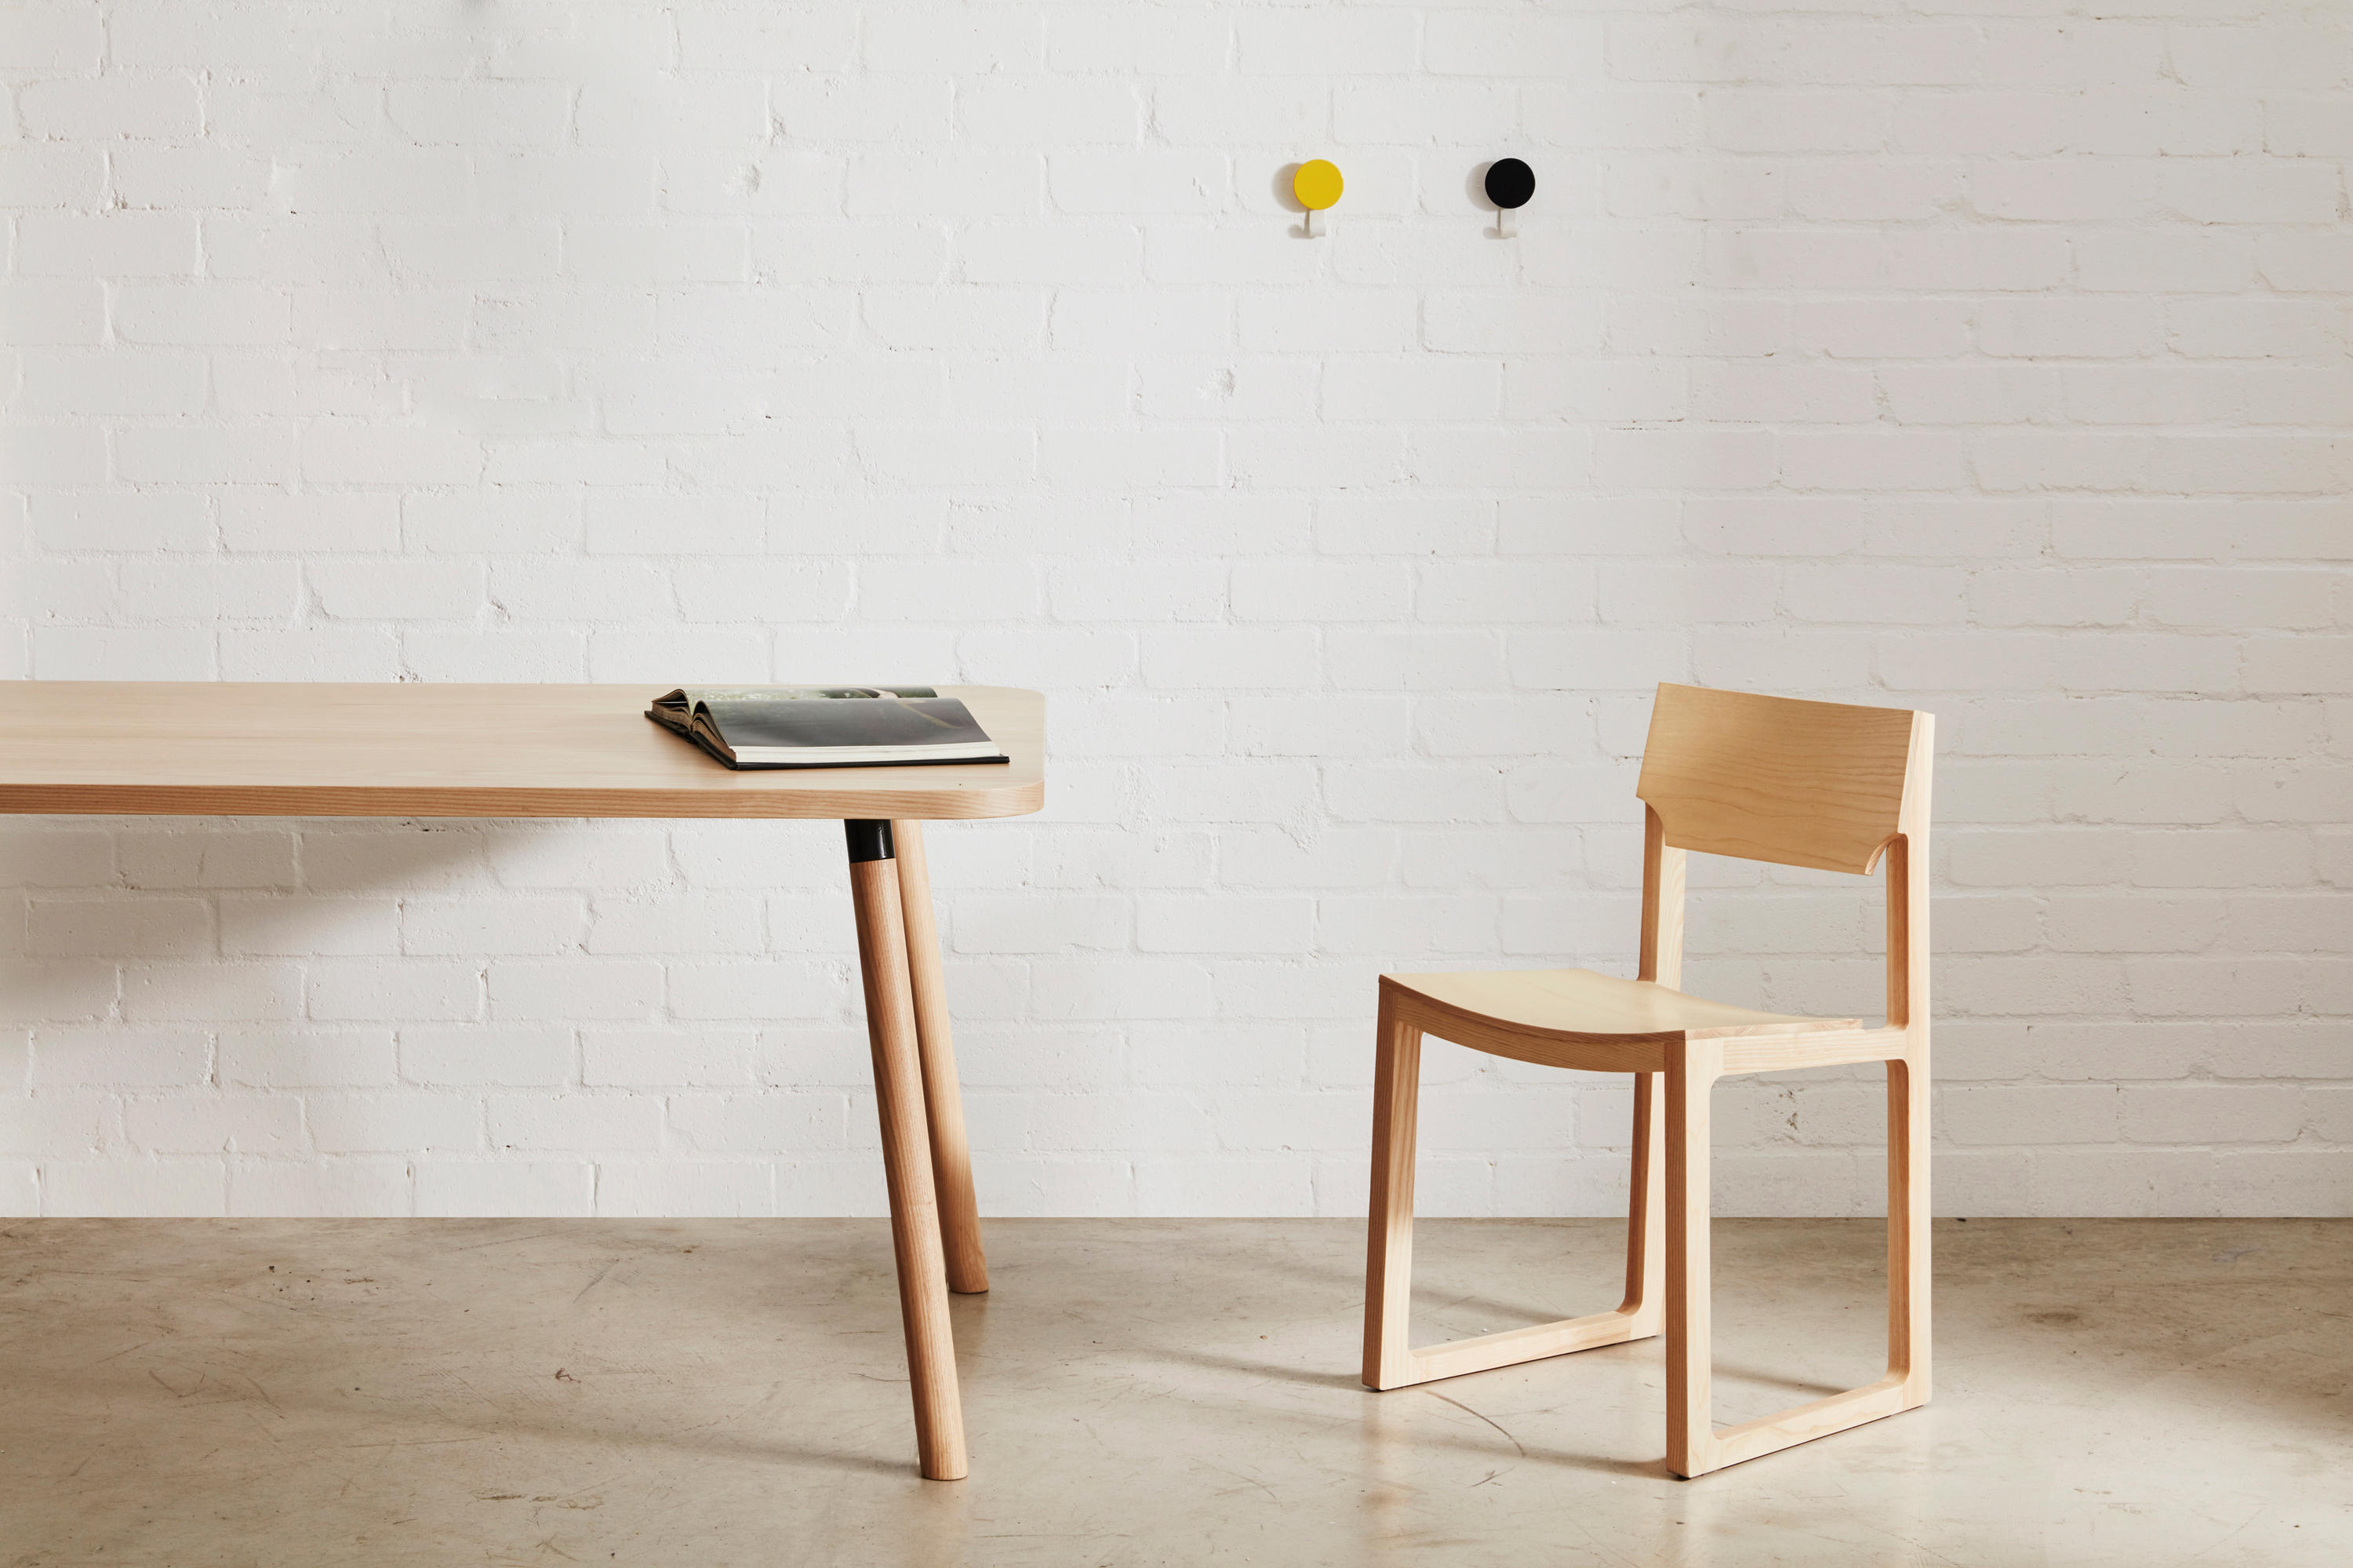 Cub Chair By DesignByThem Cub Chair By DesignByThem ...